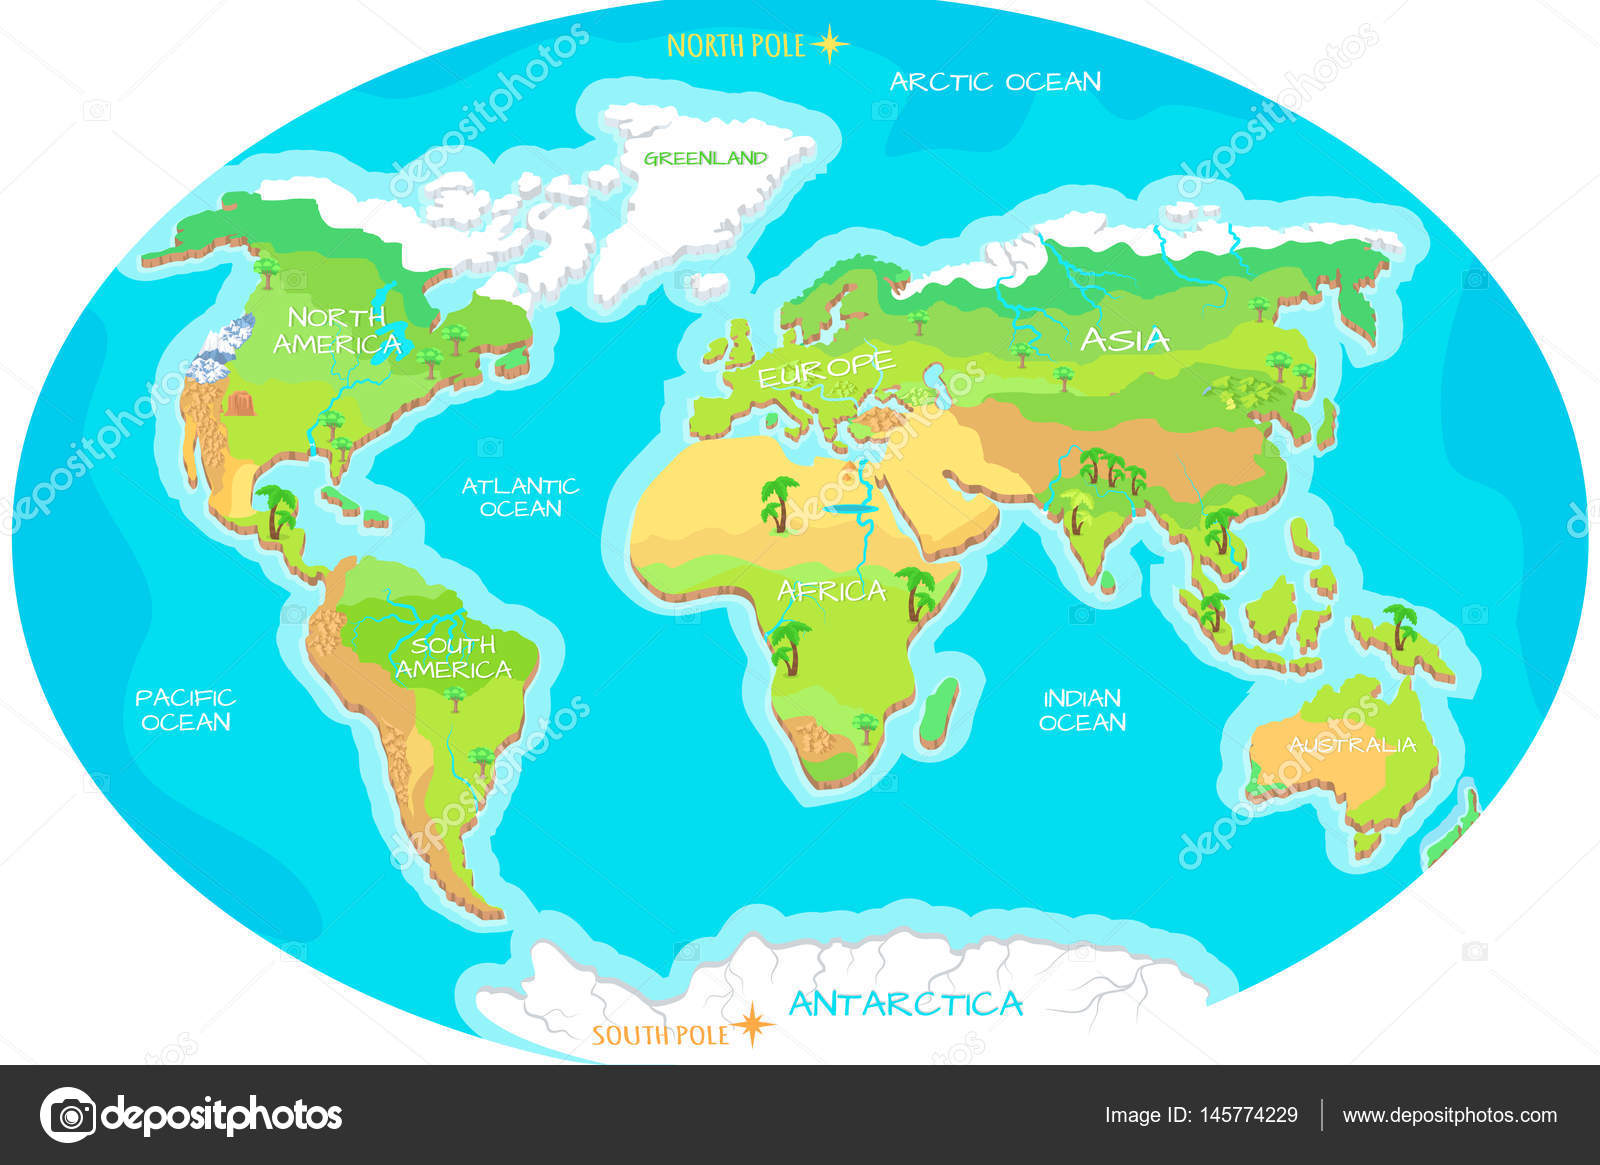 Continents oceans on map of world our planet stock vector continents oceans on map of world our planet stock vector gumiabroncs Images